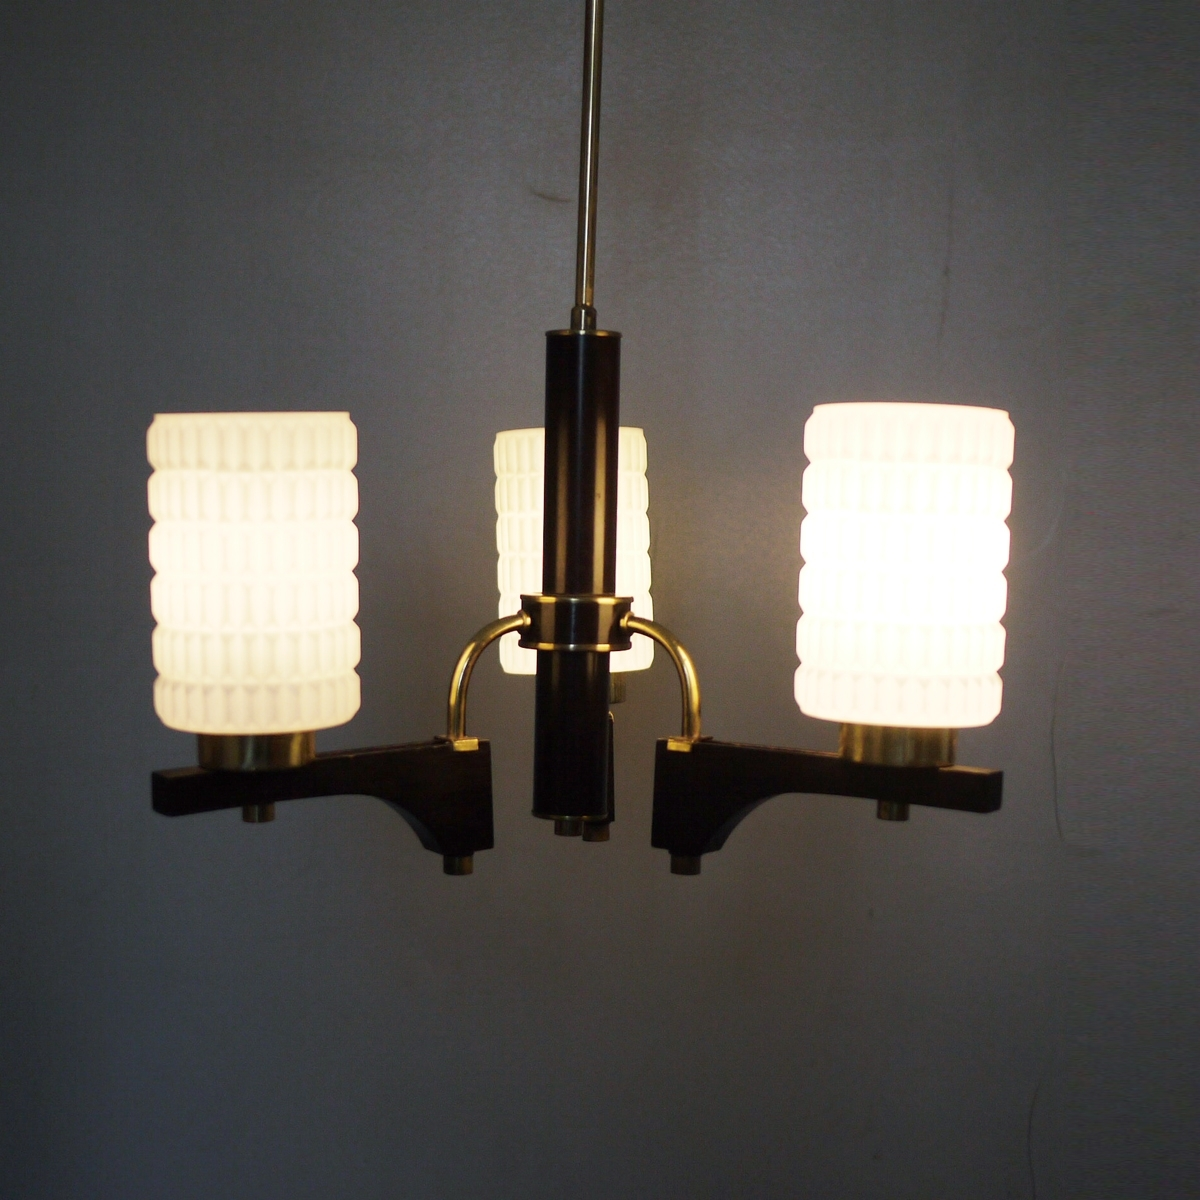 Vintage Gold And Black Glass Chandelier For Sale At Pamono Throughout Trendy Black Glass Chandelier (View 16 of 20)